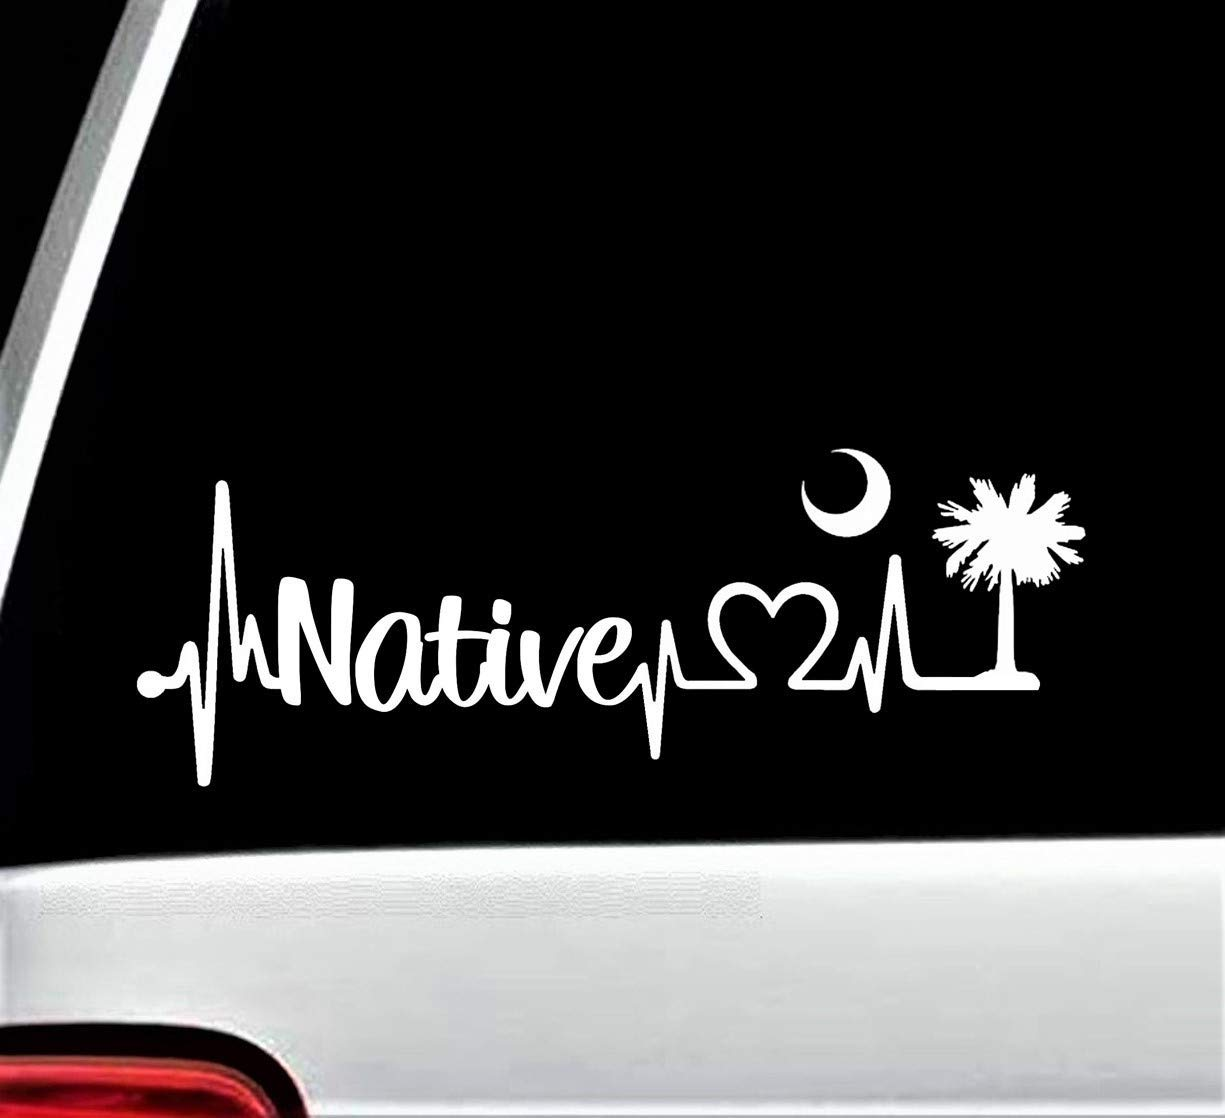 Native Heartbeat Lifeline Max 66% OFF Complete Free Shipping Decal Sticker for BG Inch Window Car 8